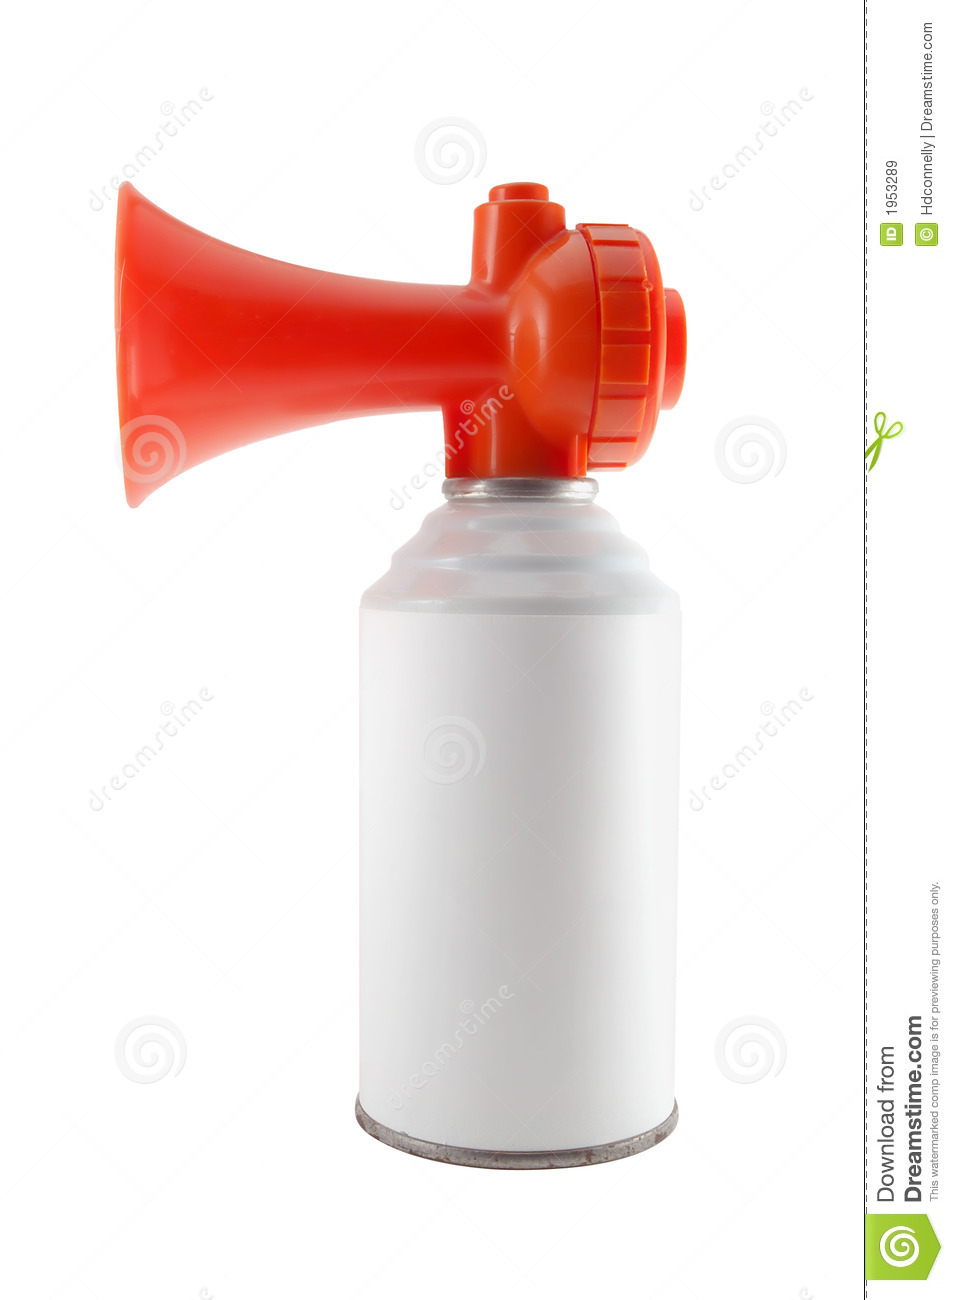 air horn royalty free stock images image 1953289 horn clipart cartoon horn clip art black and white